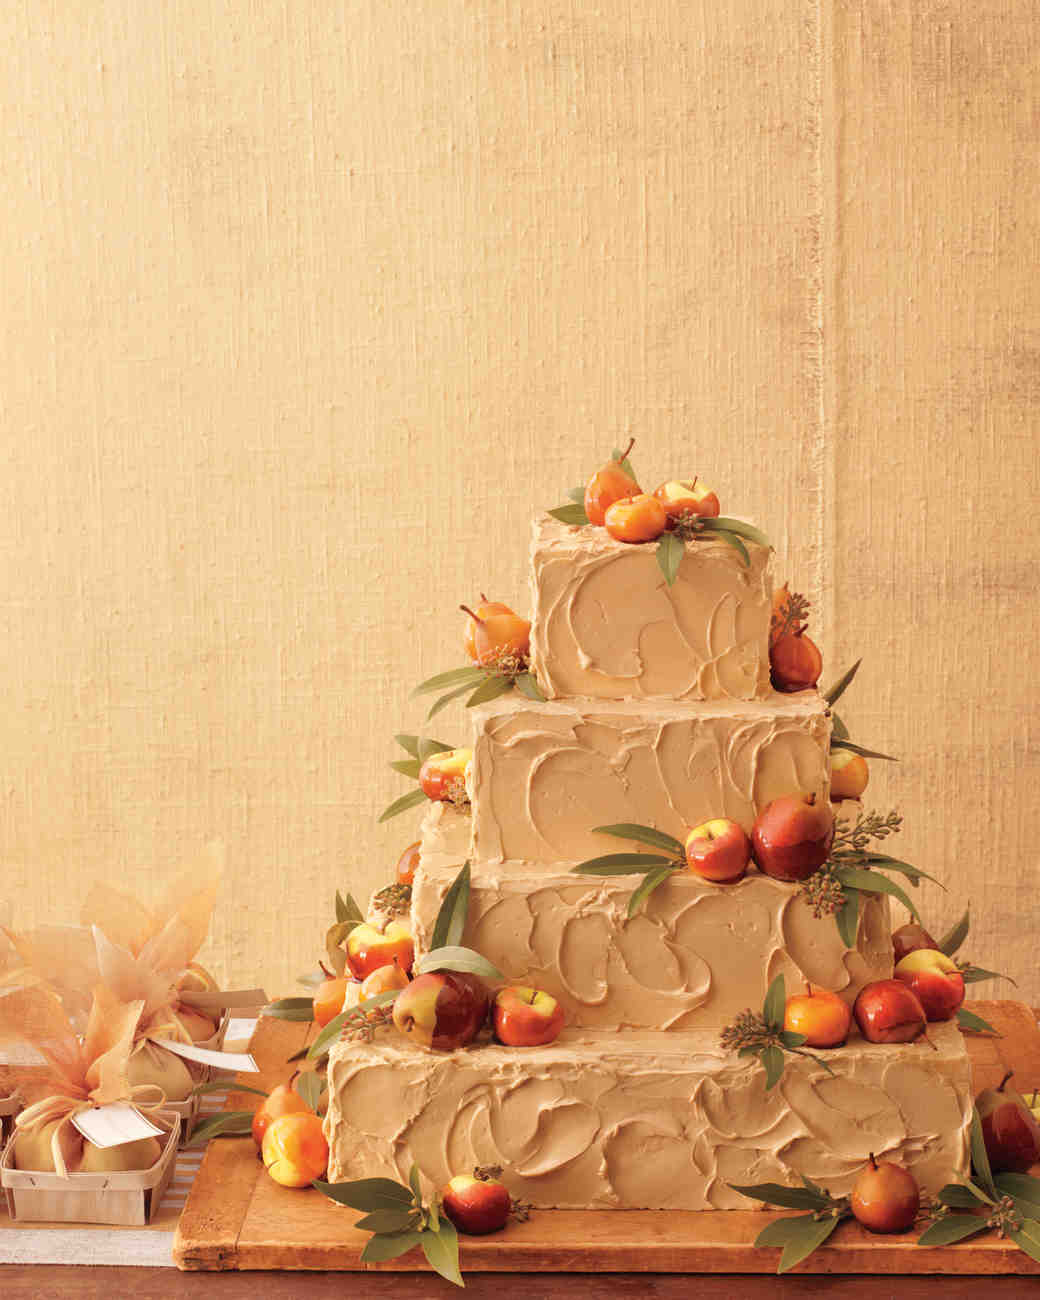 Wedding Cakes by Theme | Martha Stewart Weddings